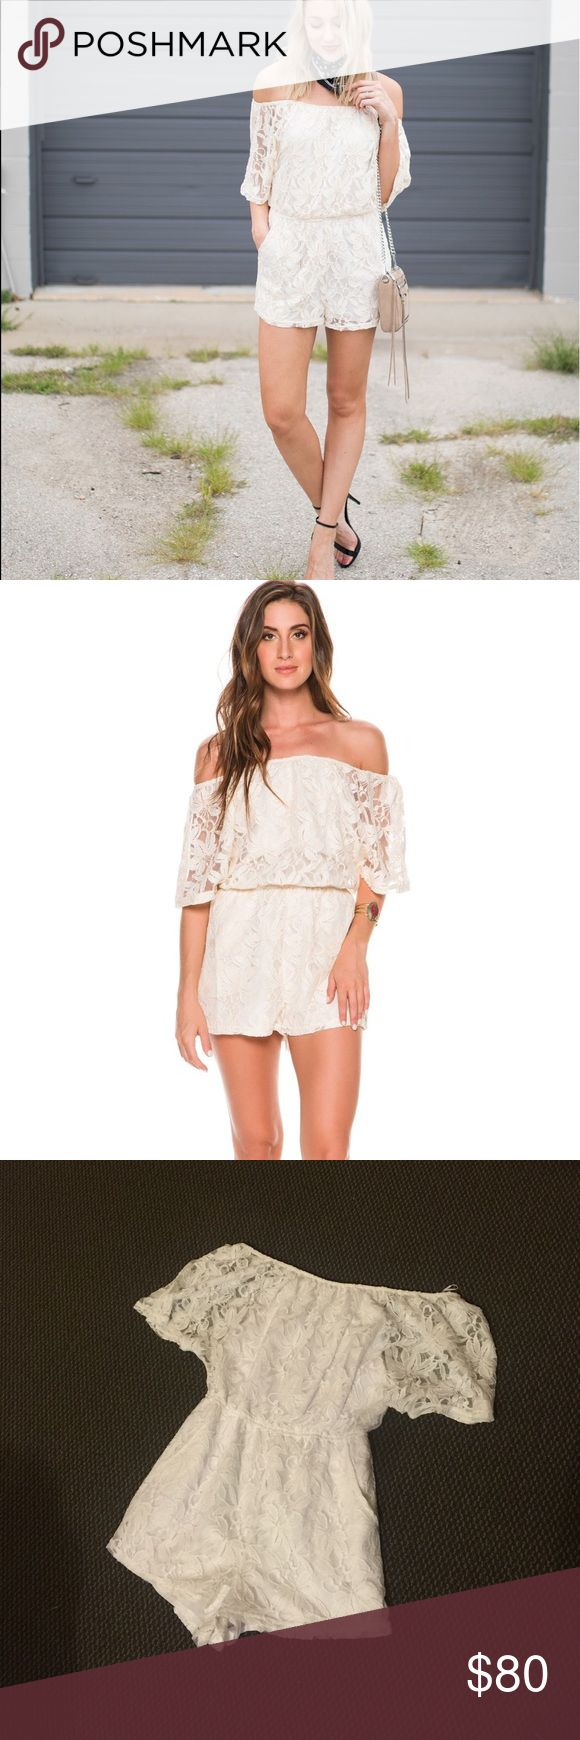 🆕 White Dainty Laced Romper BB DAKOTA Romper. Worn once. Purchased from Bloomingdales. Tagged fl&l for exposure For Love and Lemons Dresses